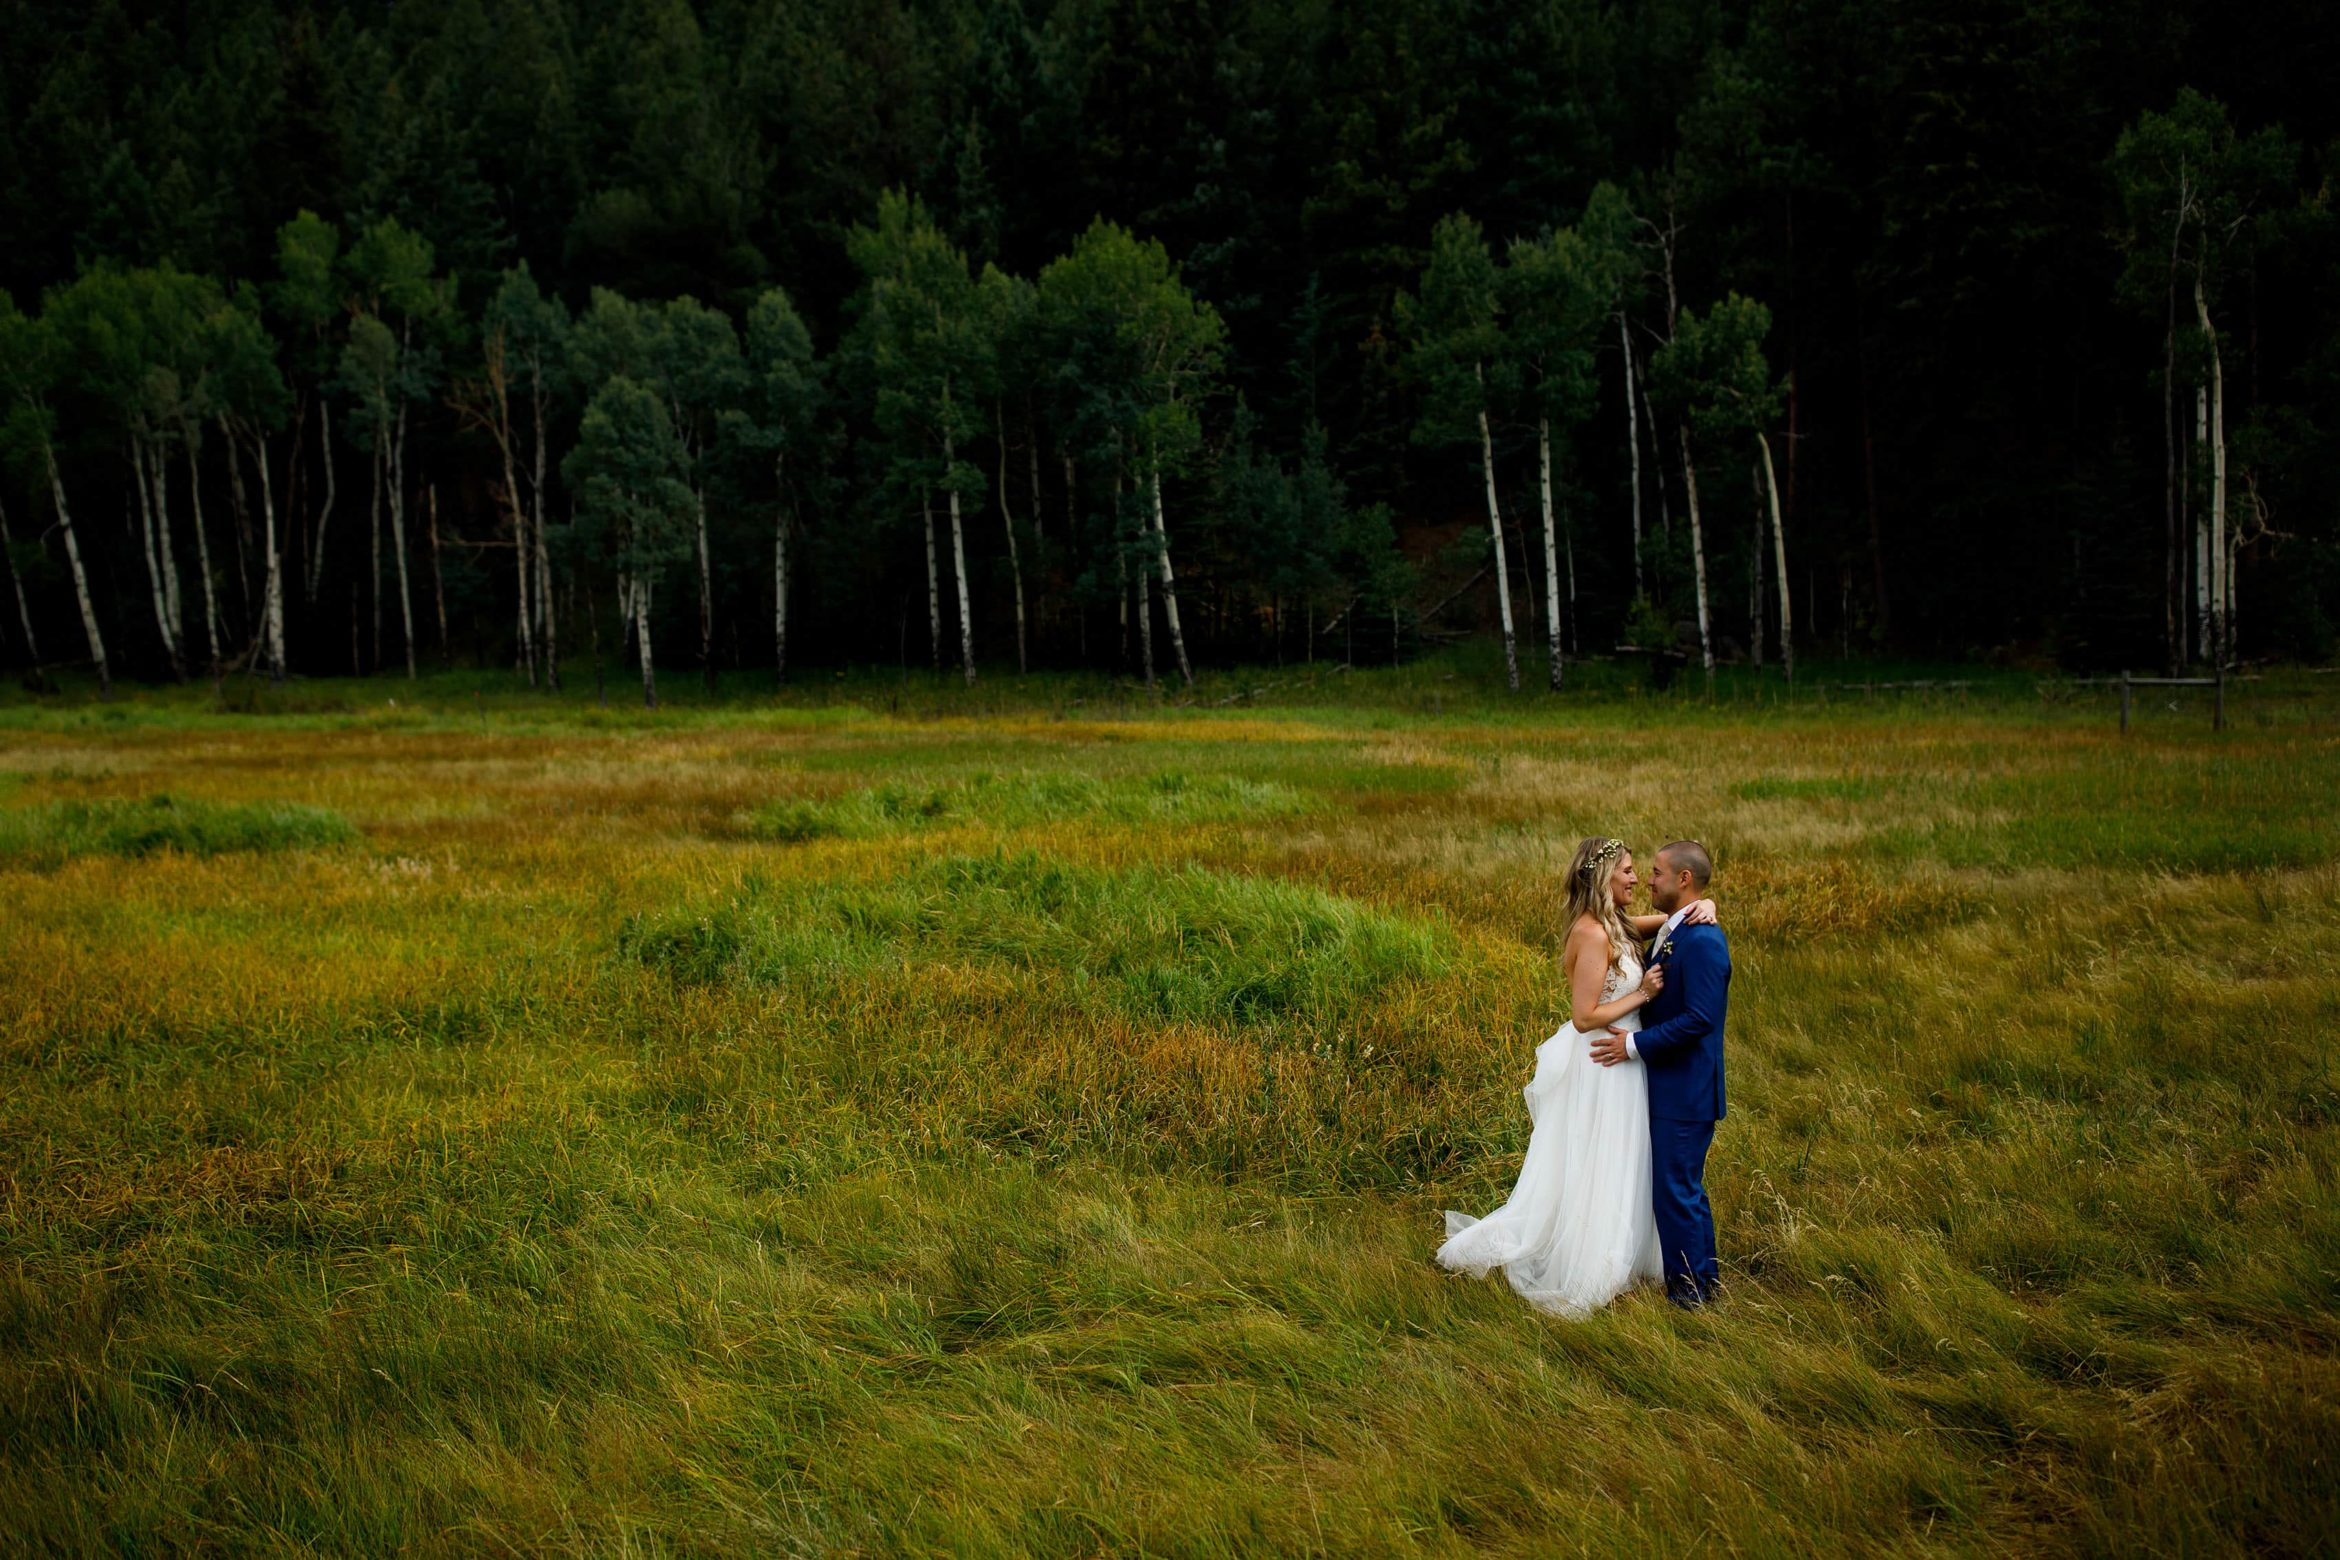 The couple embrace each other in the tall grass at Deer Creek Valley Ranch